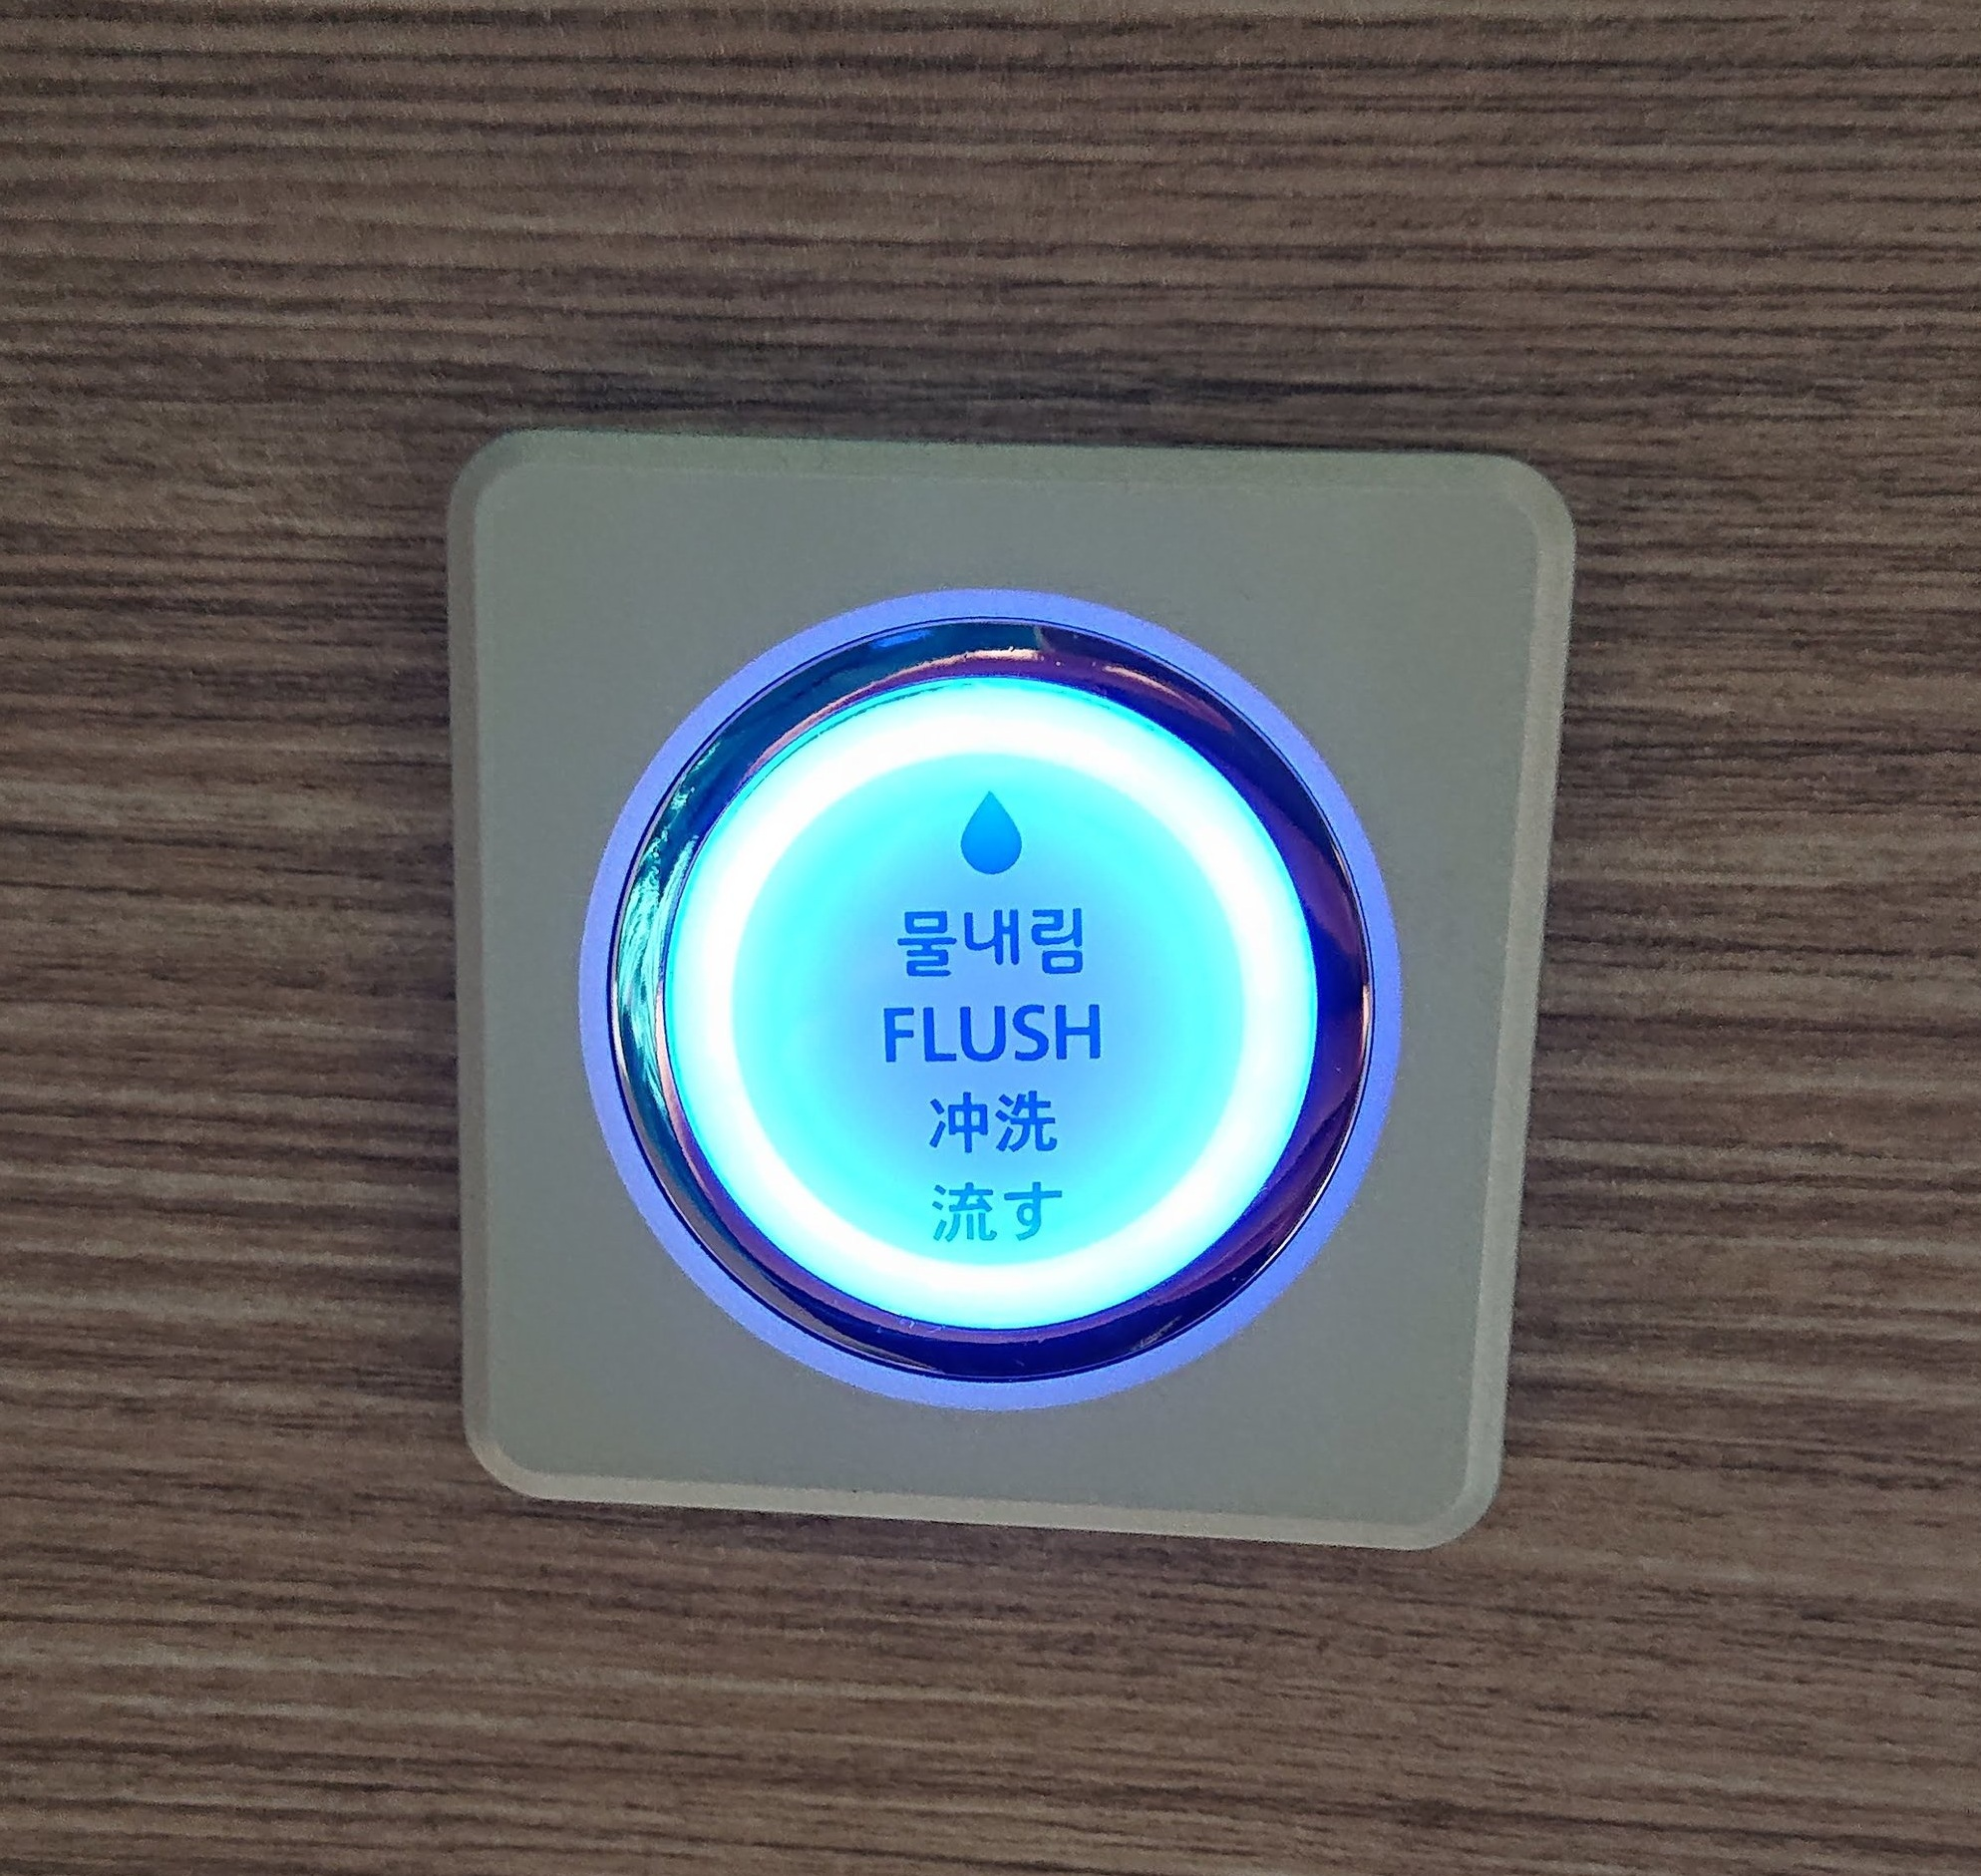 Even the flush buttons in Korea are flashy.